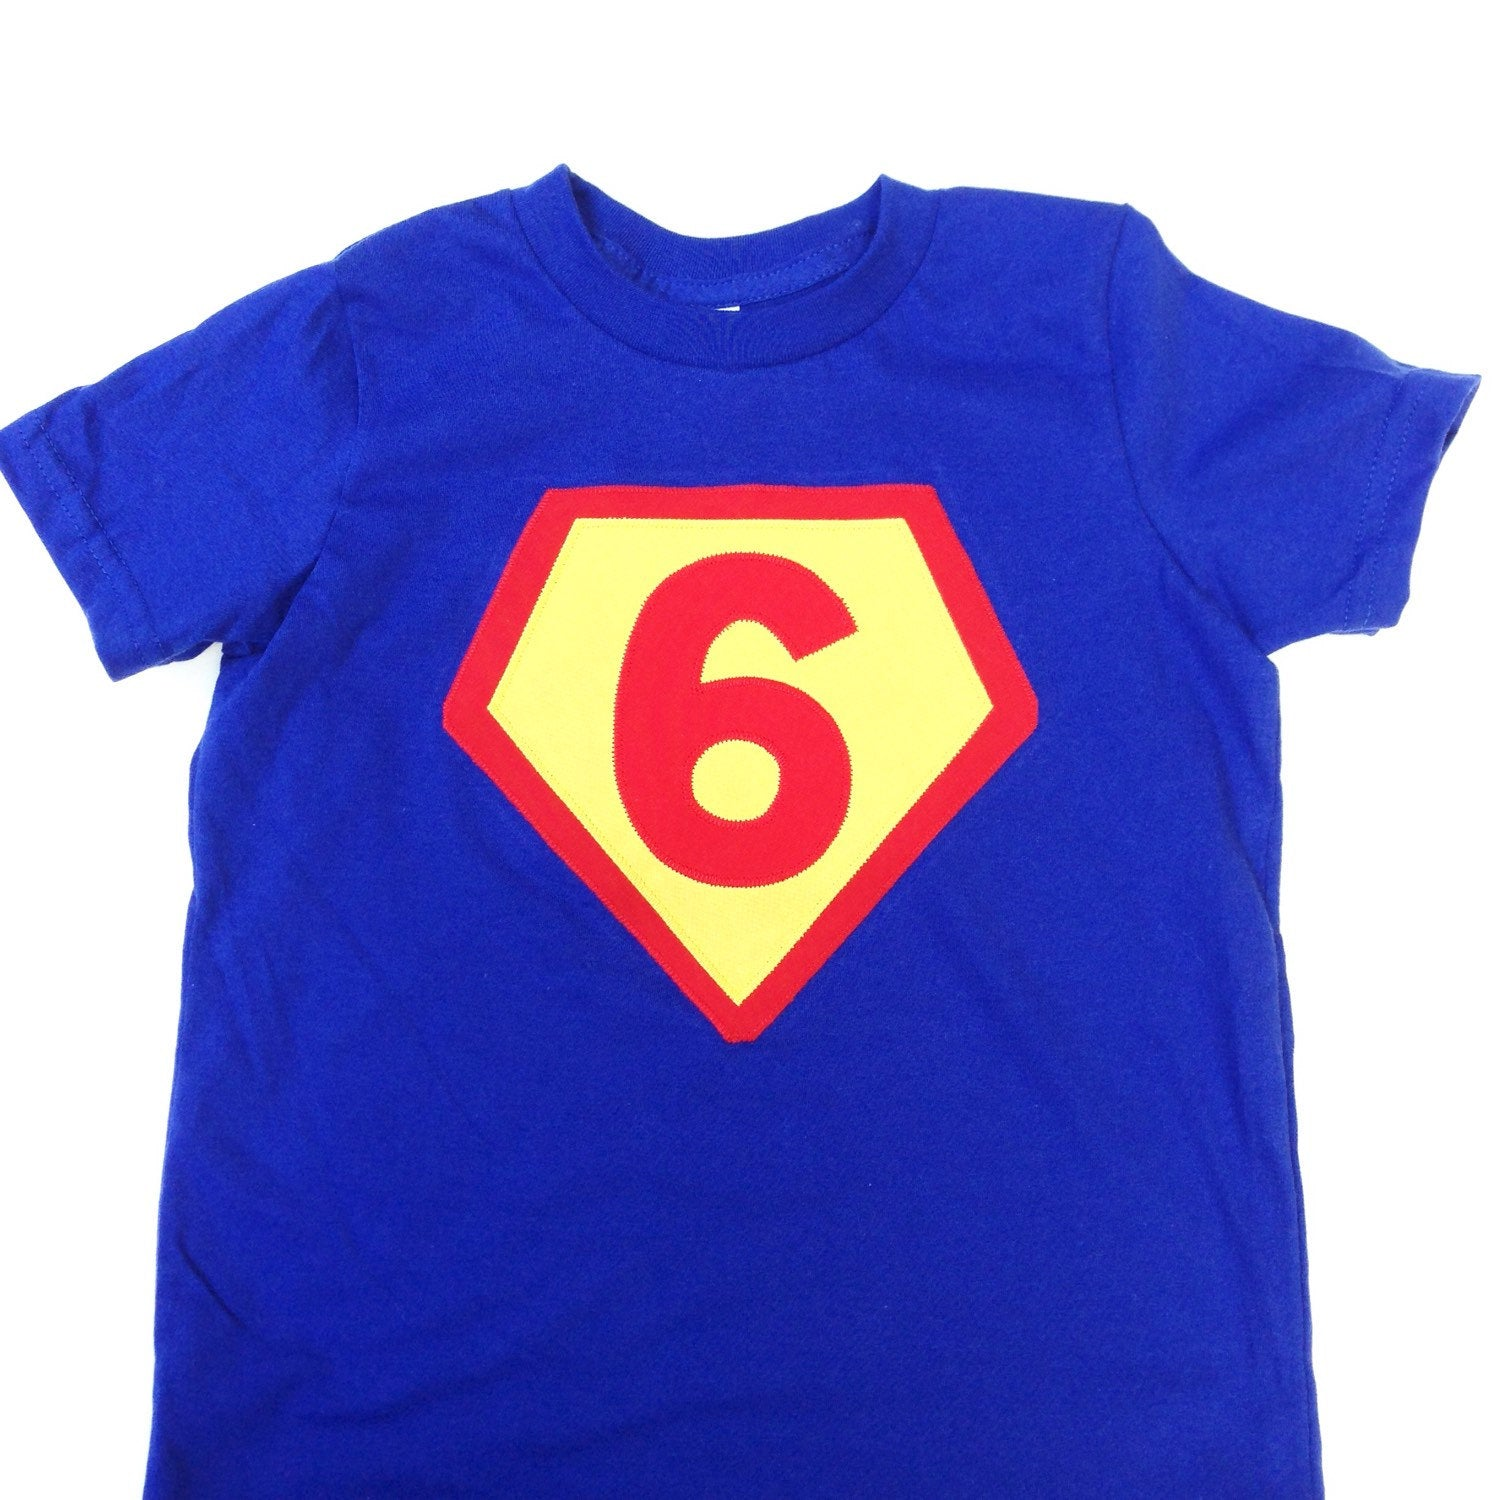 265481ddb Fan Photo Number 6 Royal with red and sunshine- Children Costume Superhero  Superman Birthday Shirt